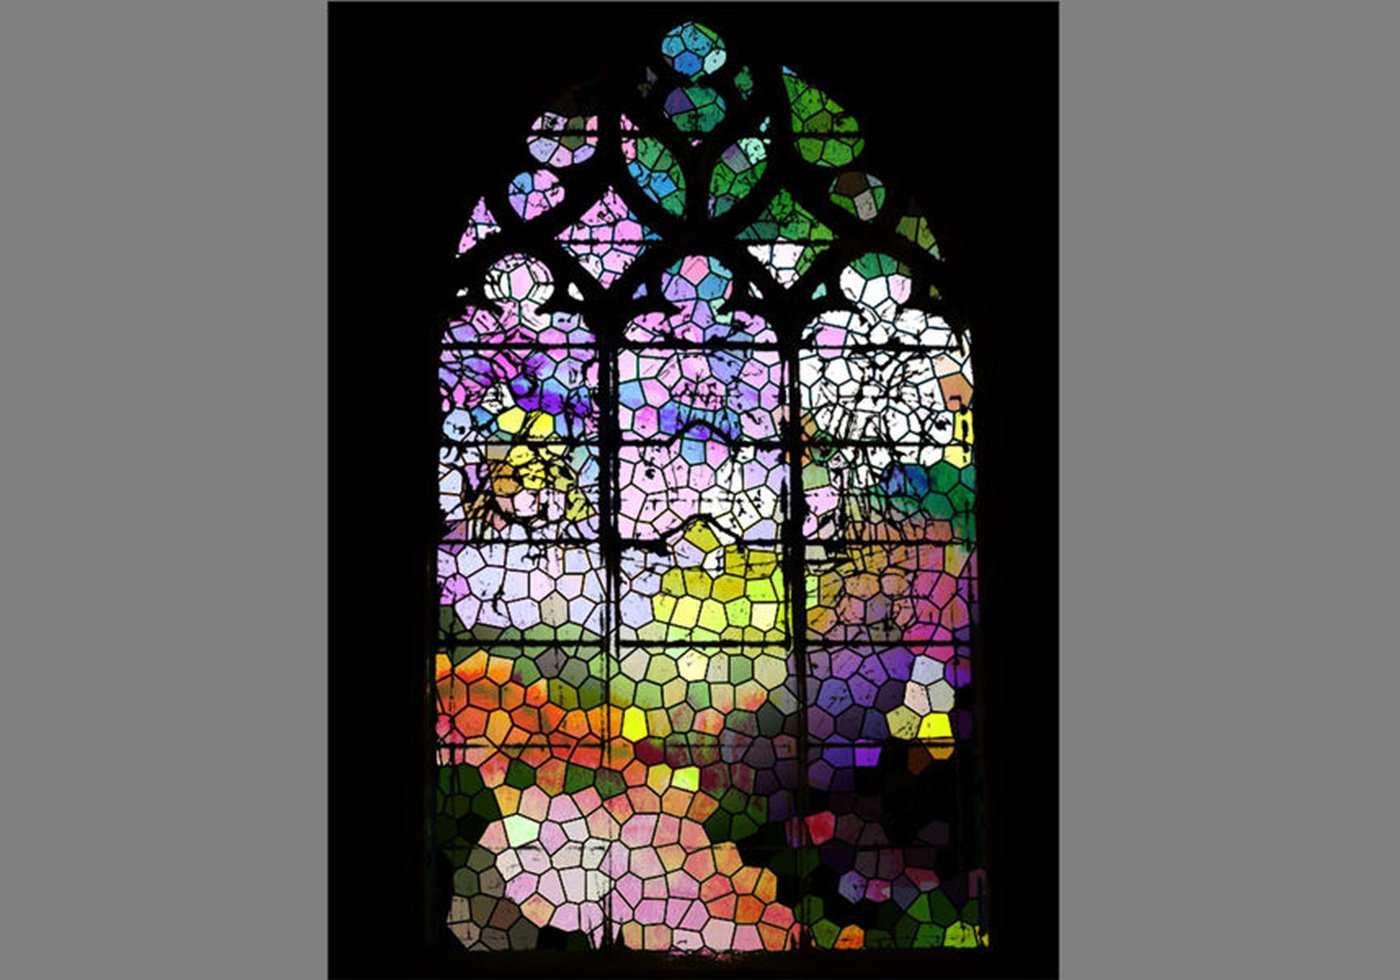 Stained Glass Window PSD Template Free PSDs At Brusheezy!